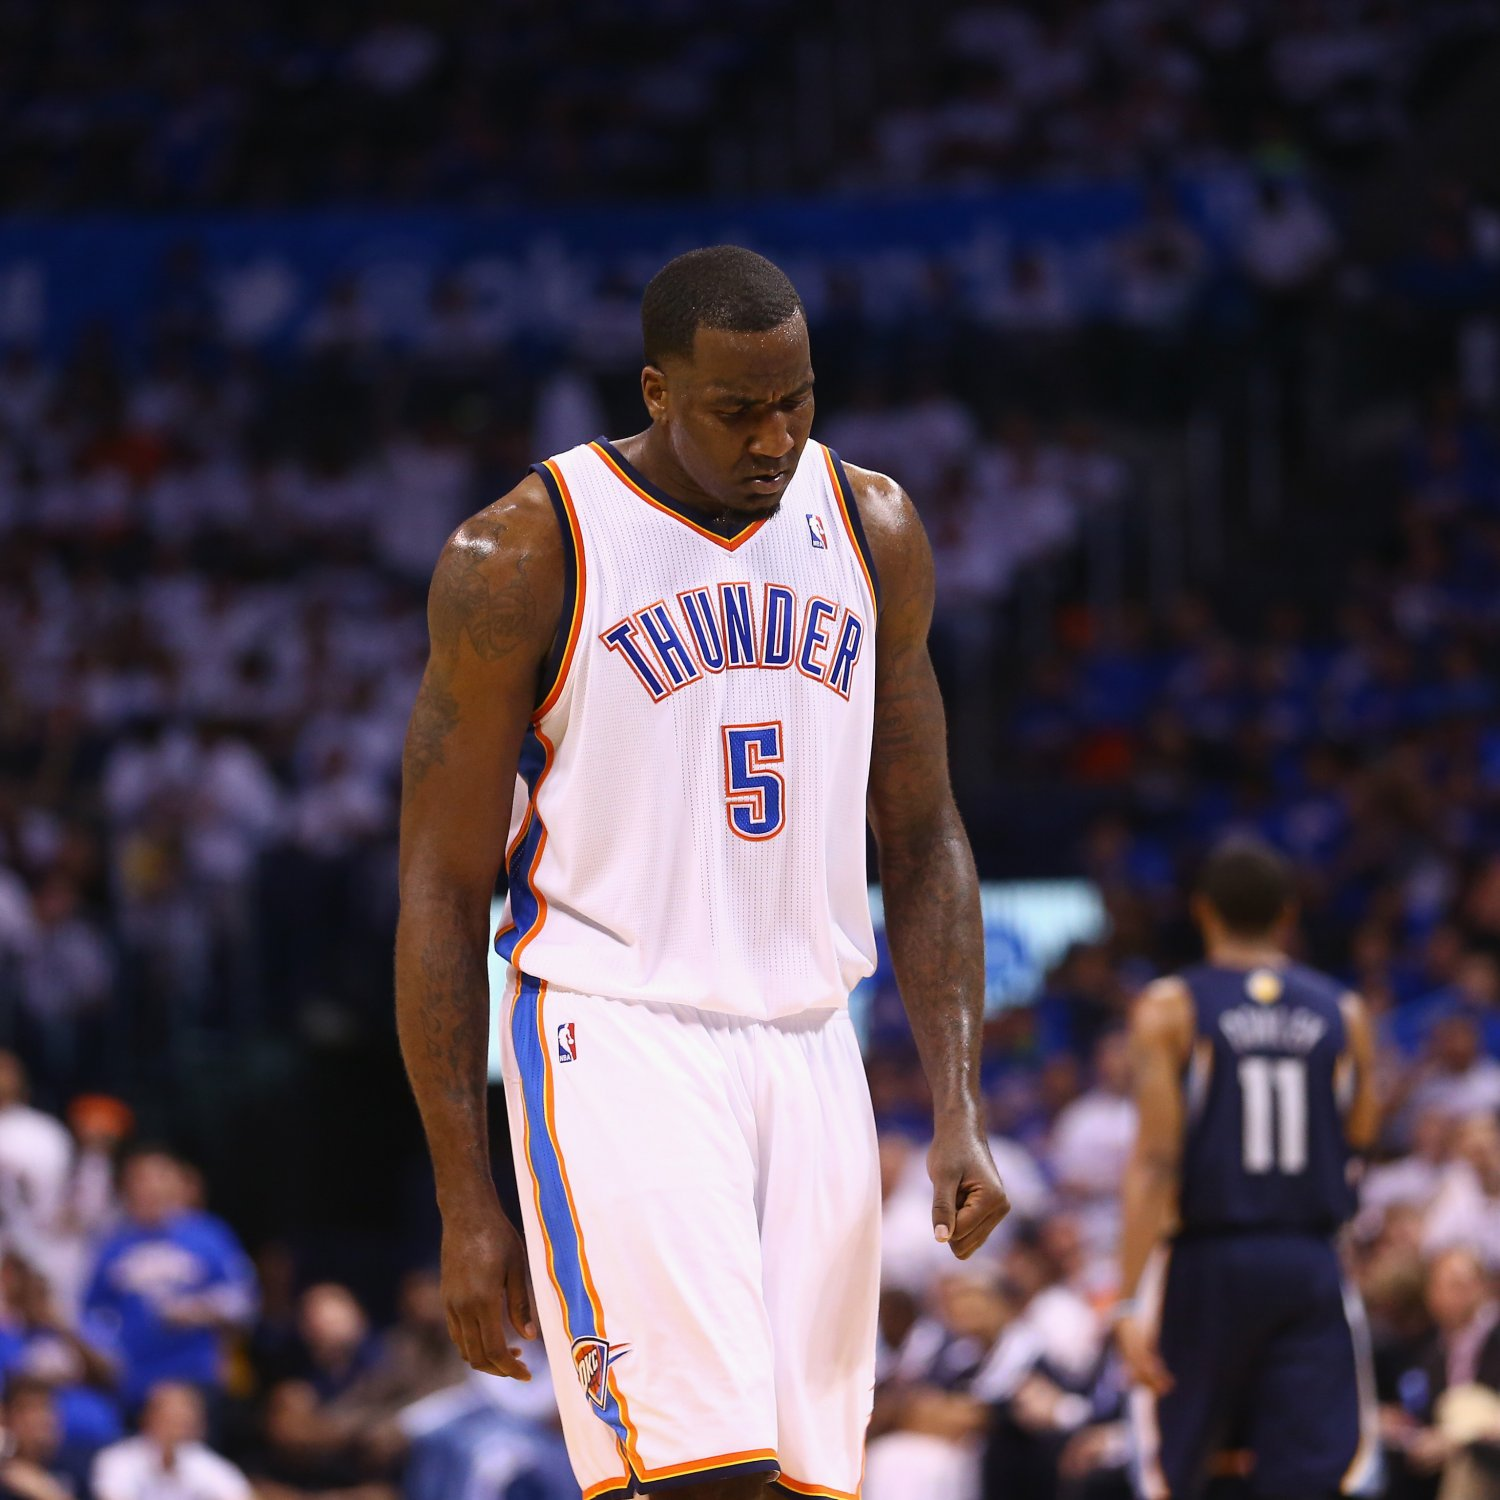 Motivational Quotes For Sports Teams: OKC Thunder Players Fighting For Their Basketball Lives